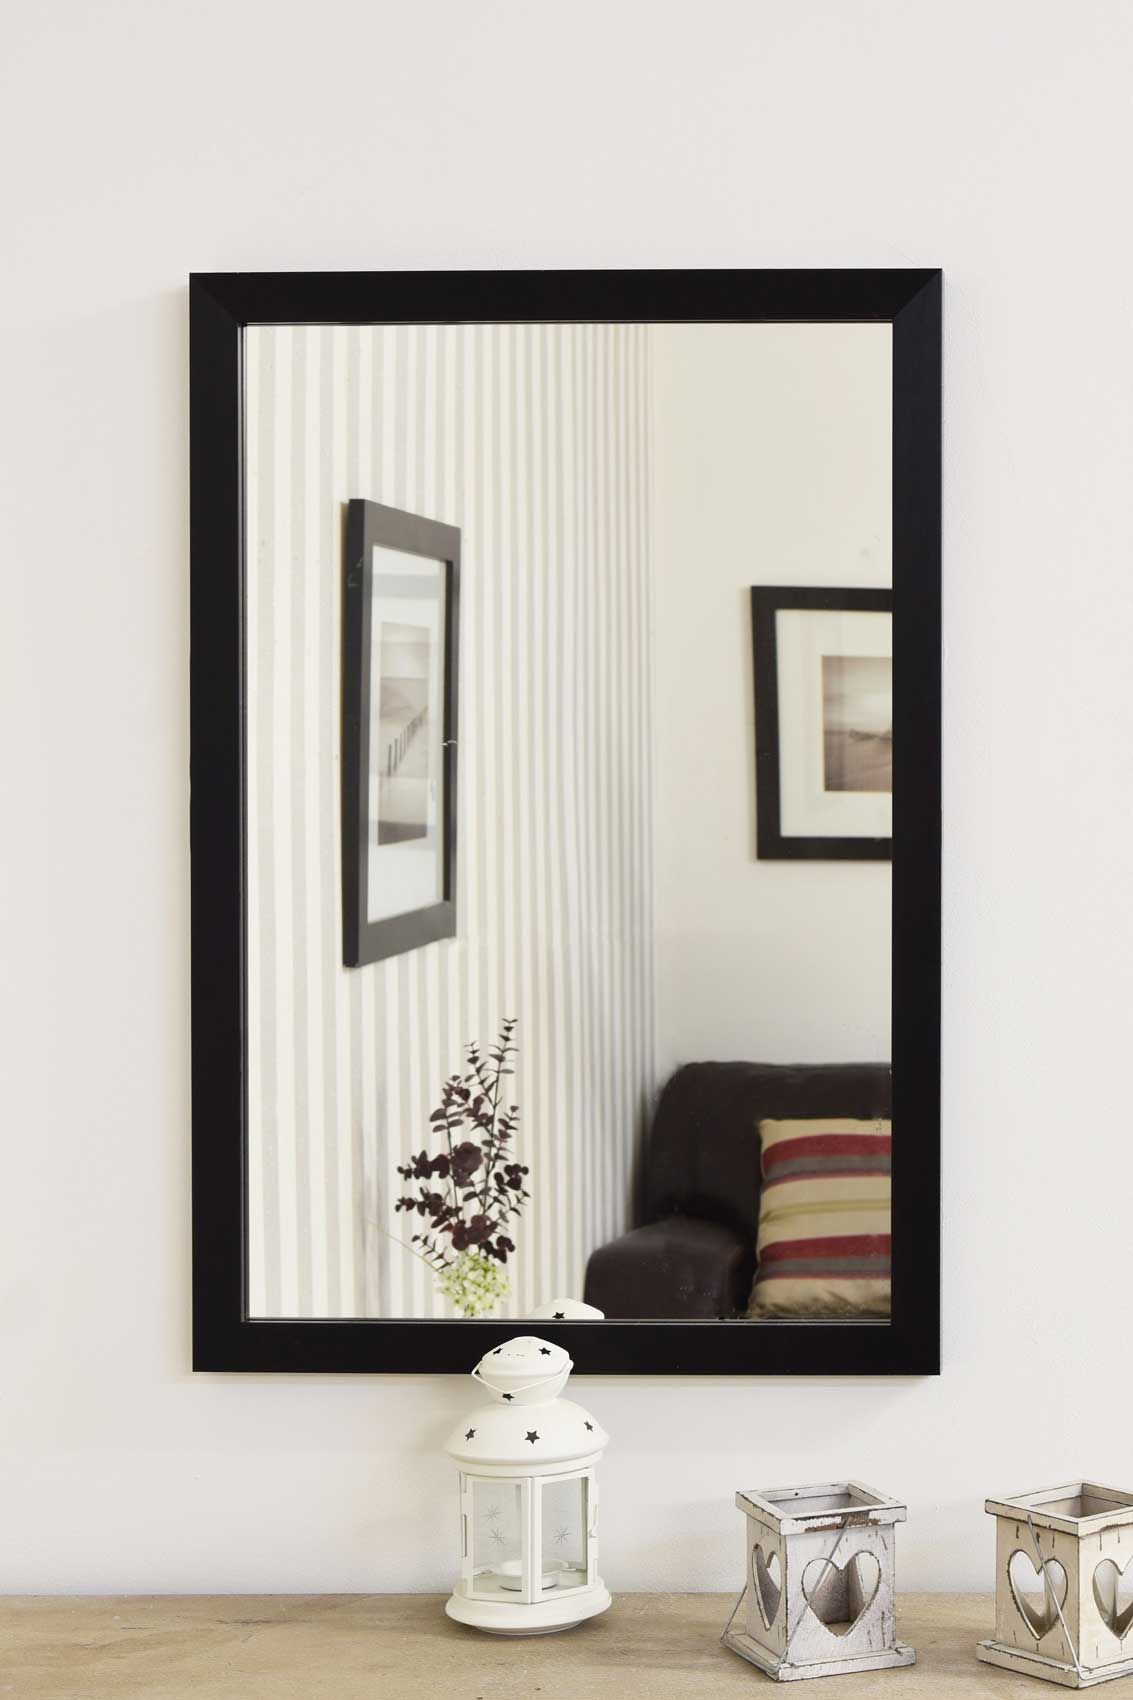 Large black framed modern contemporary wall mirror 2ft8 x 2ft for Large black framed mirror